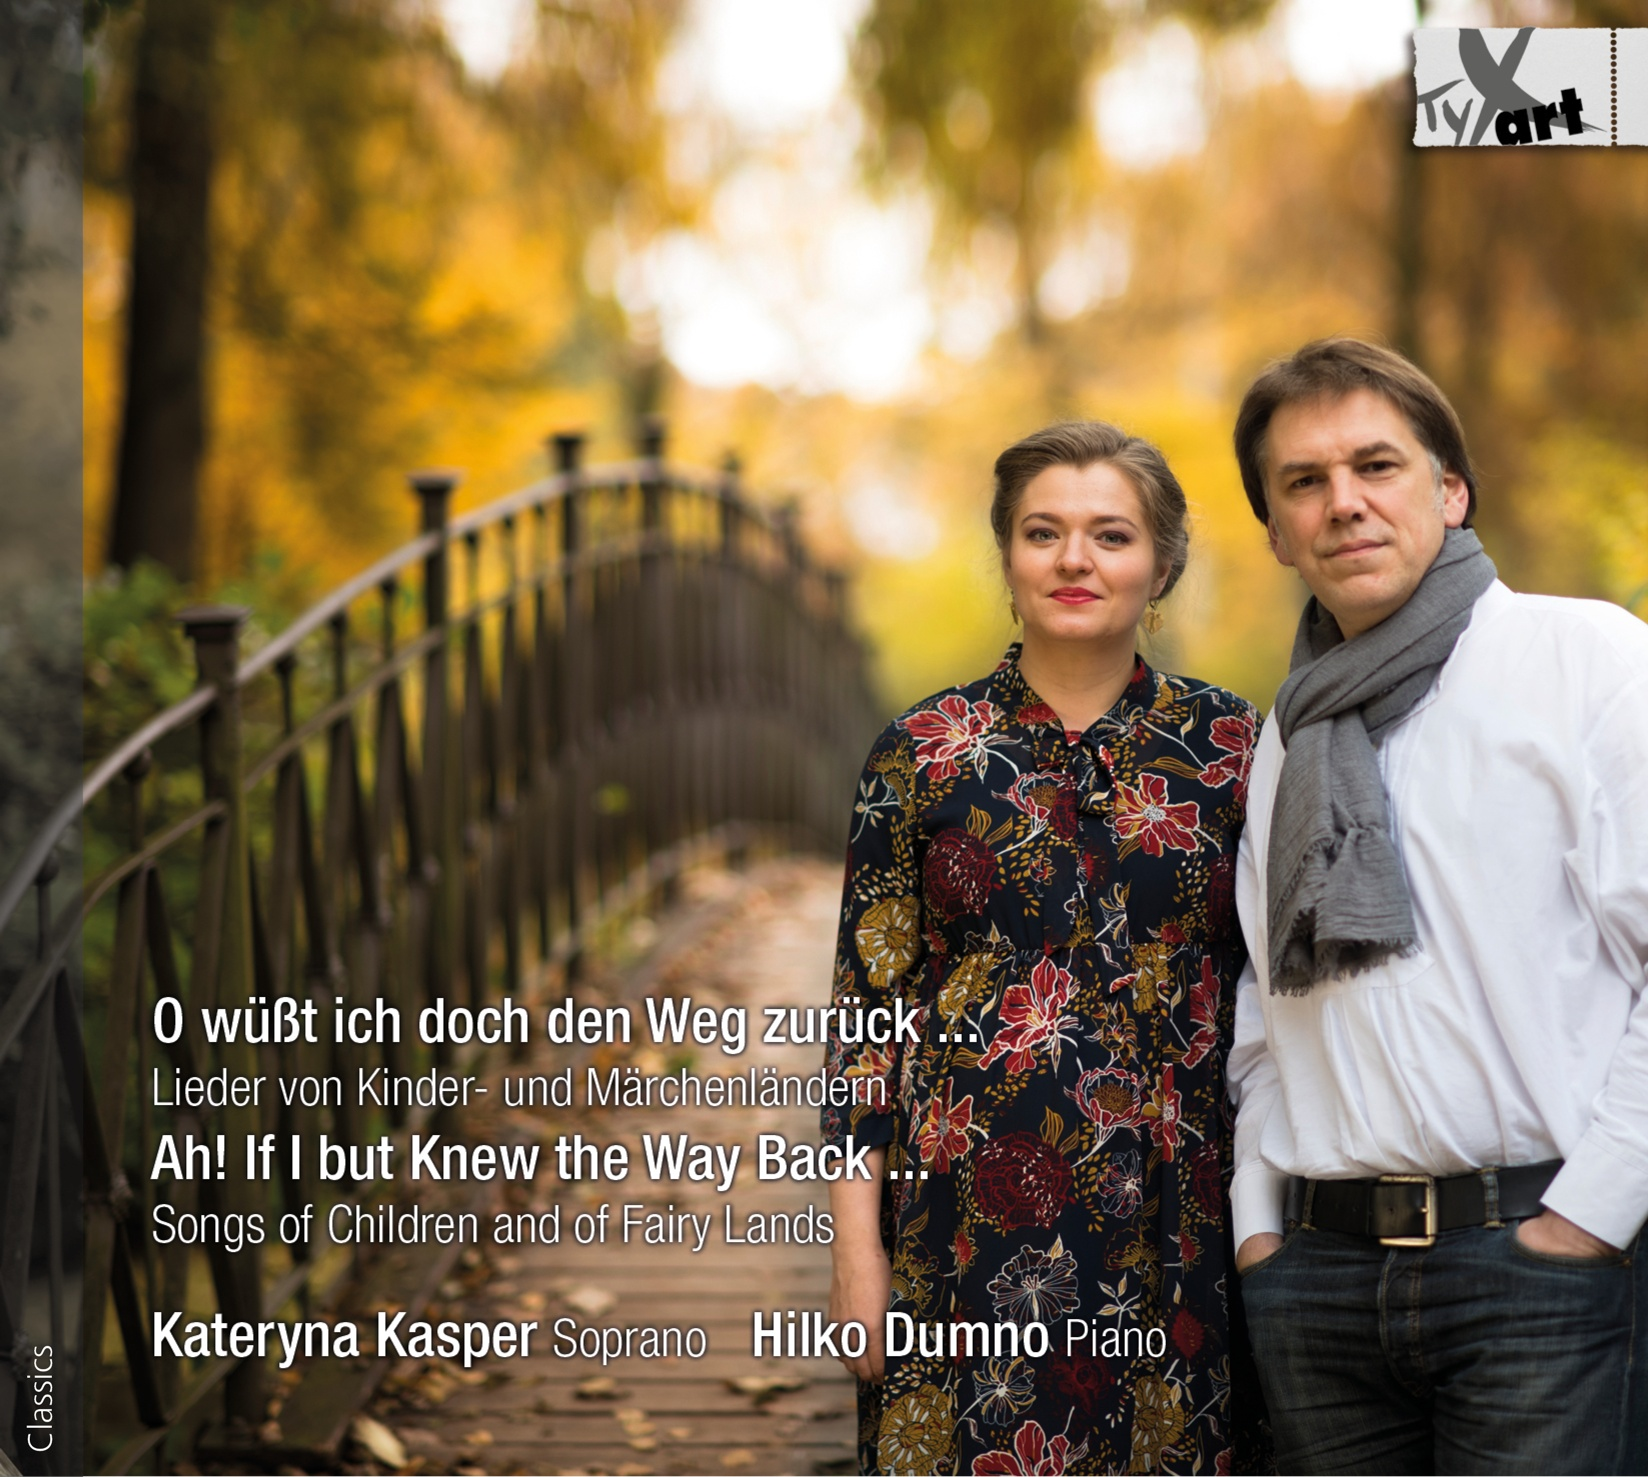 Songs of Children and of Fairy Lands - Kateryna Kasper and Hilko Dumno